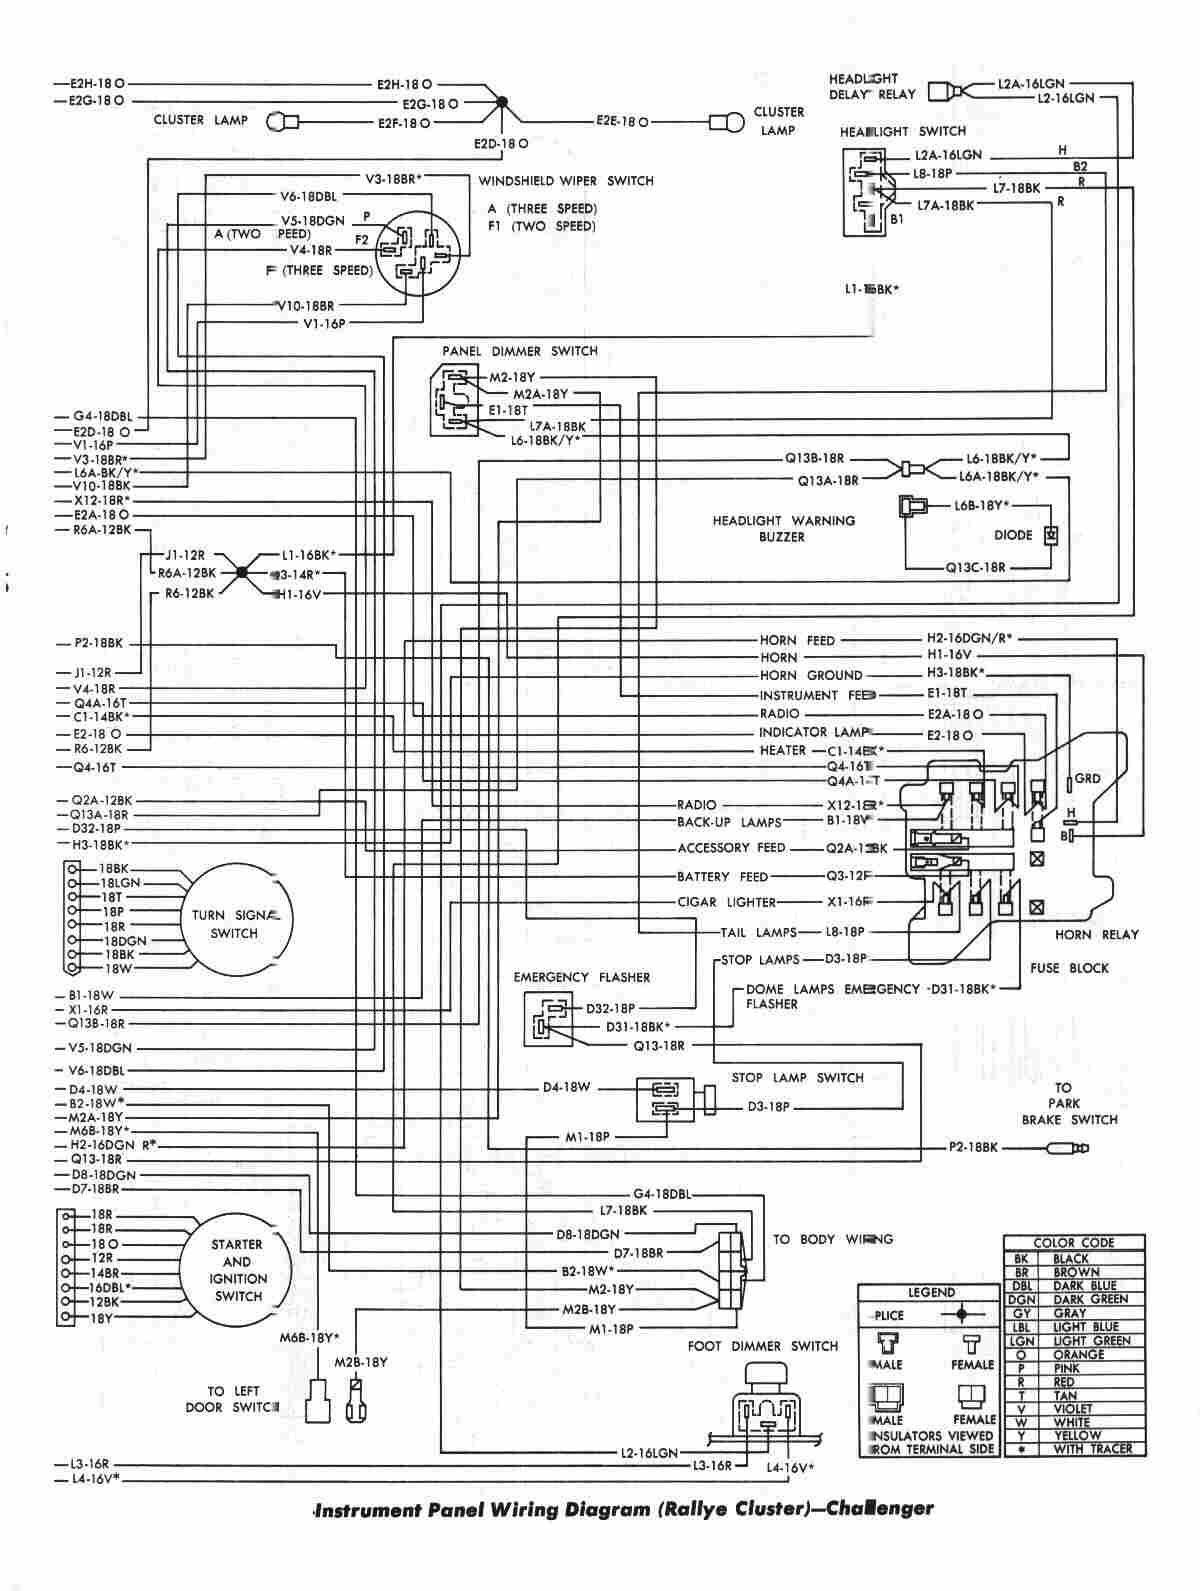 2011 dodge charger wiring diagram new 1973 dart [ 1200 x 1591 Pixel ]